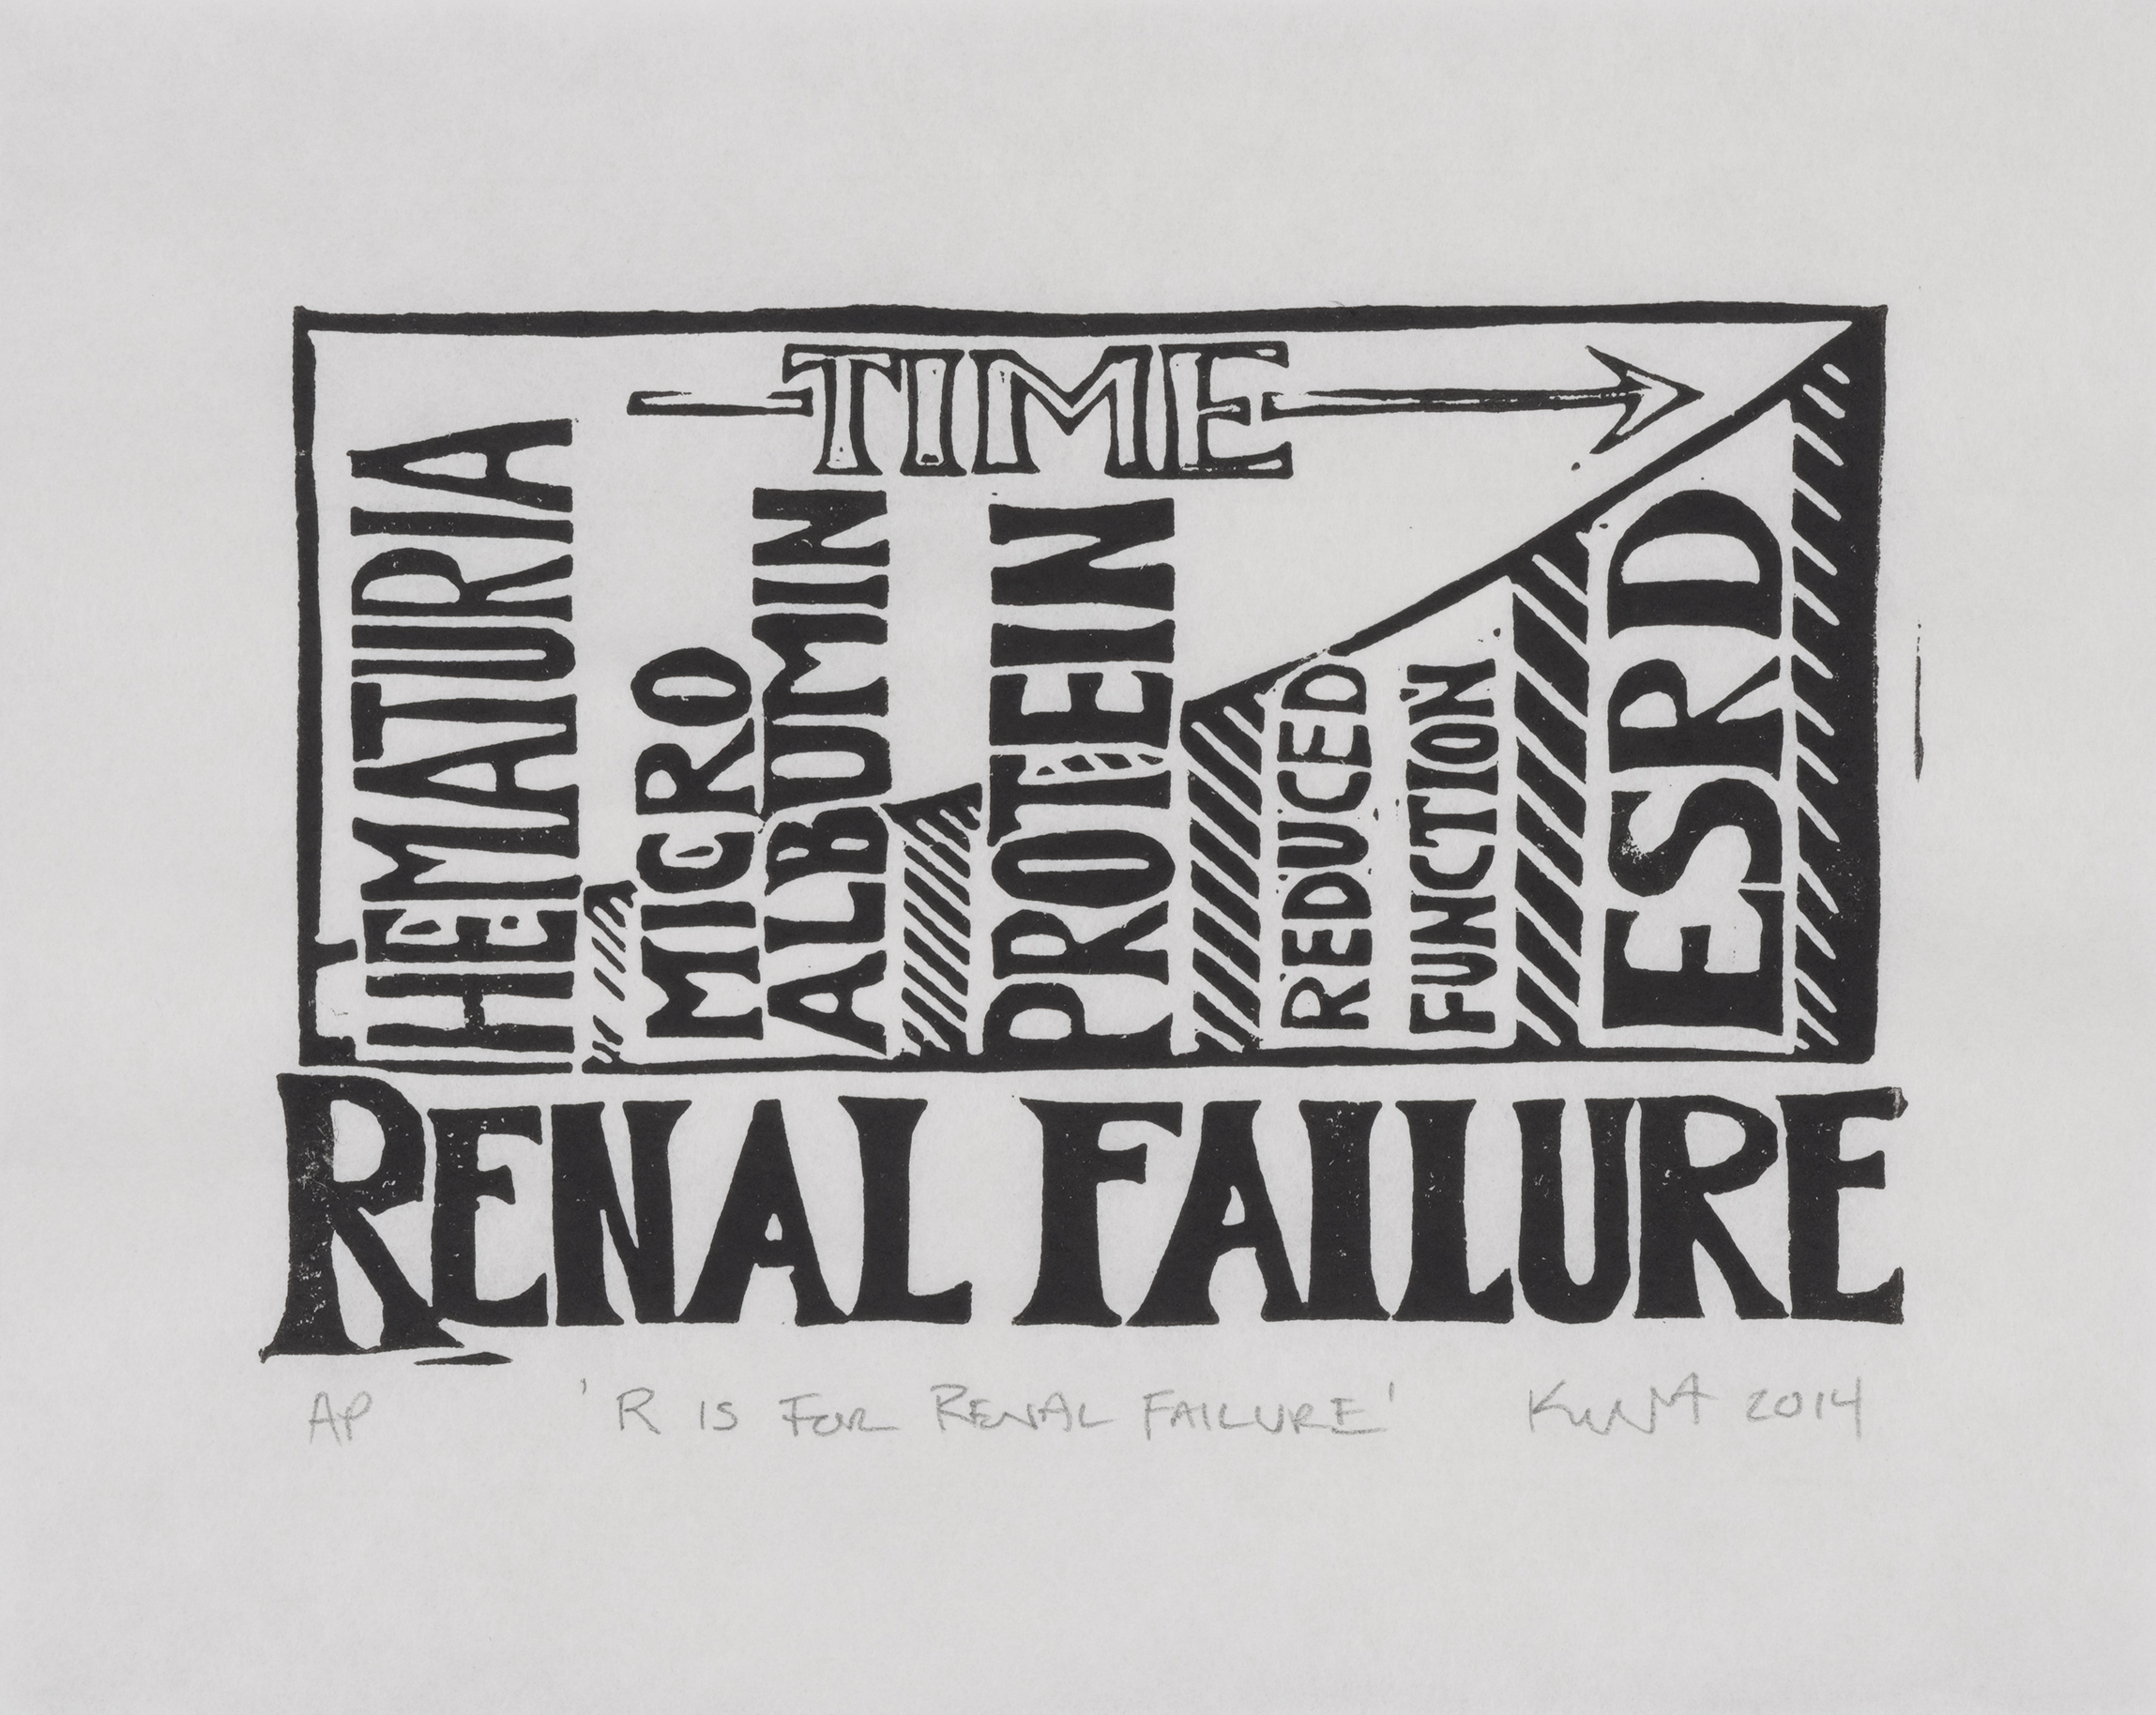 R is for Renal Failure